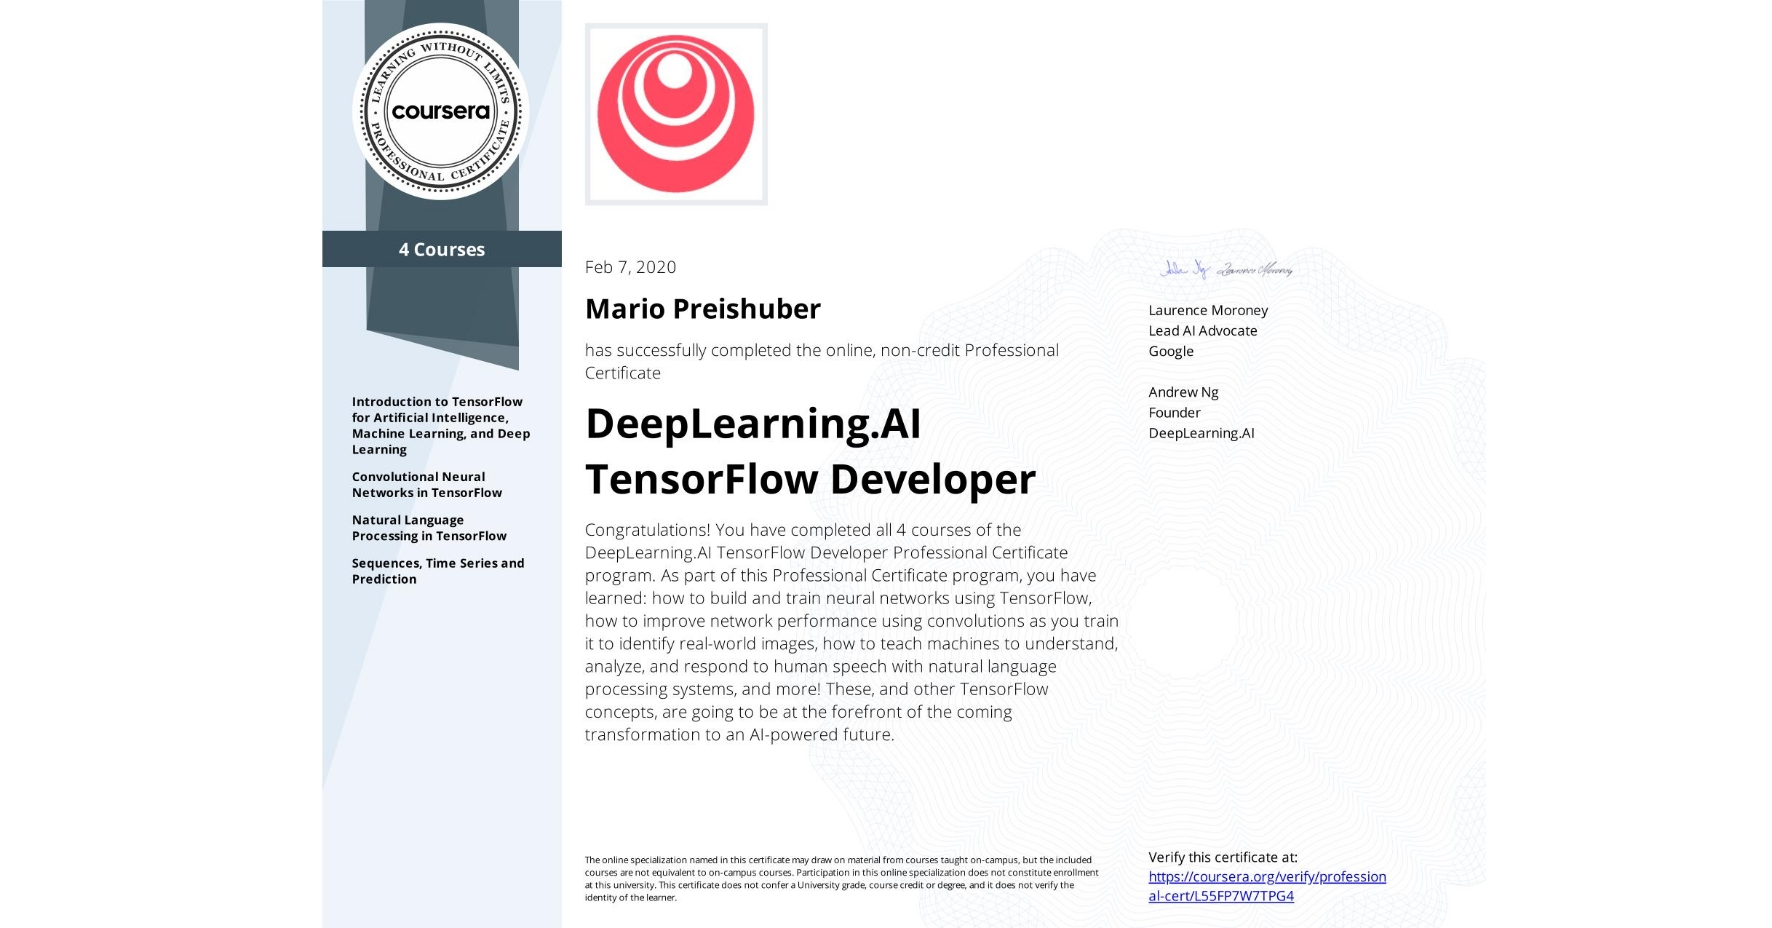 View certificate for Mario Preishuber, DeepLearning.AI TensorFlow Developer, offered through Coursera. Congratulations! You have completed all 4 courses of the DeepLearning.AI TensorFlow Developer Professional Certificate program.   As part of this Professional Certificate program, you have learned: how to build and train neural networks using TensorFlow, how to improve network performance using convolutions as you train it to identify real-world images, how to teach machines to understand, analyze, and respond to human speech with natural language processing systems, and more!  These, and other TensorFlow concepts, are going to be at the forefront of the coming transformation to an AI-powered future.